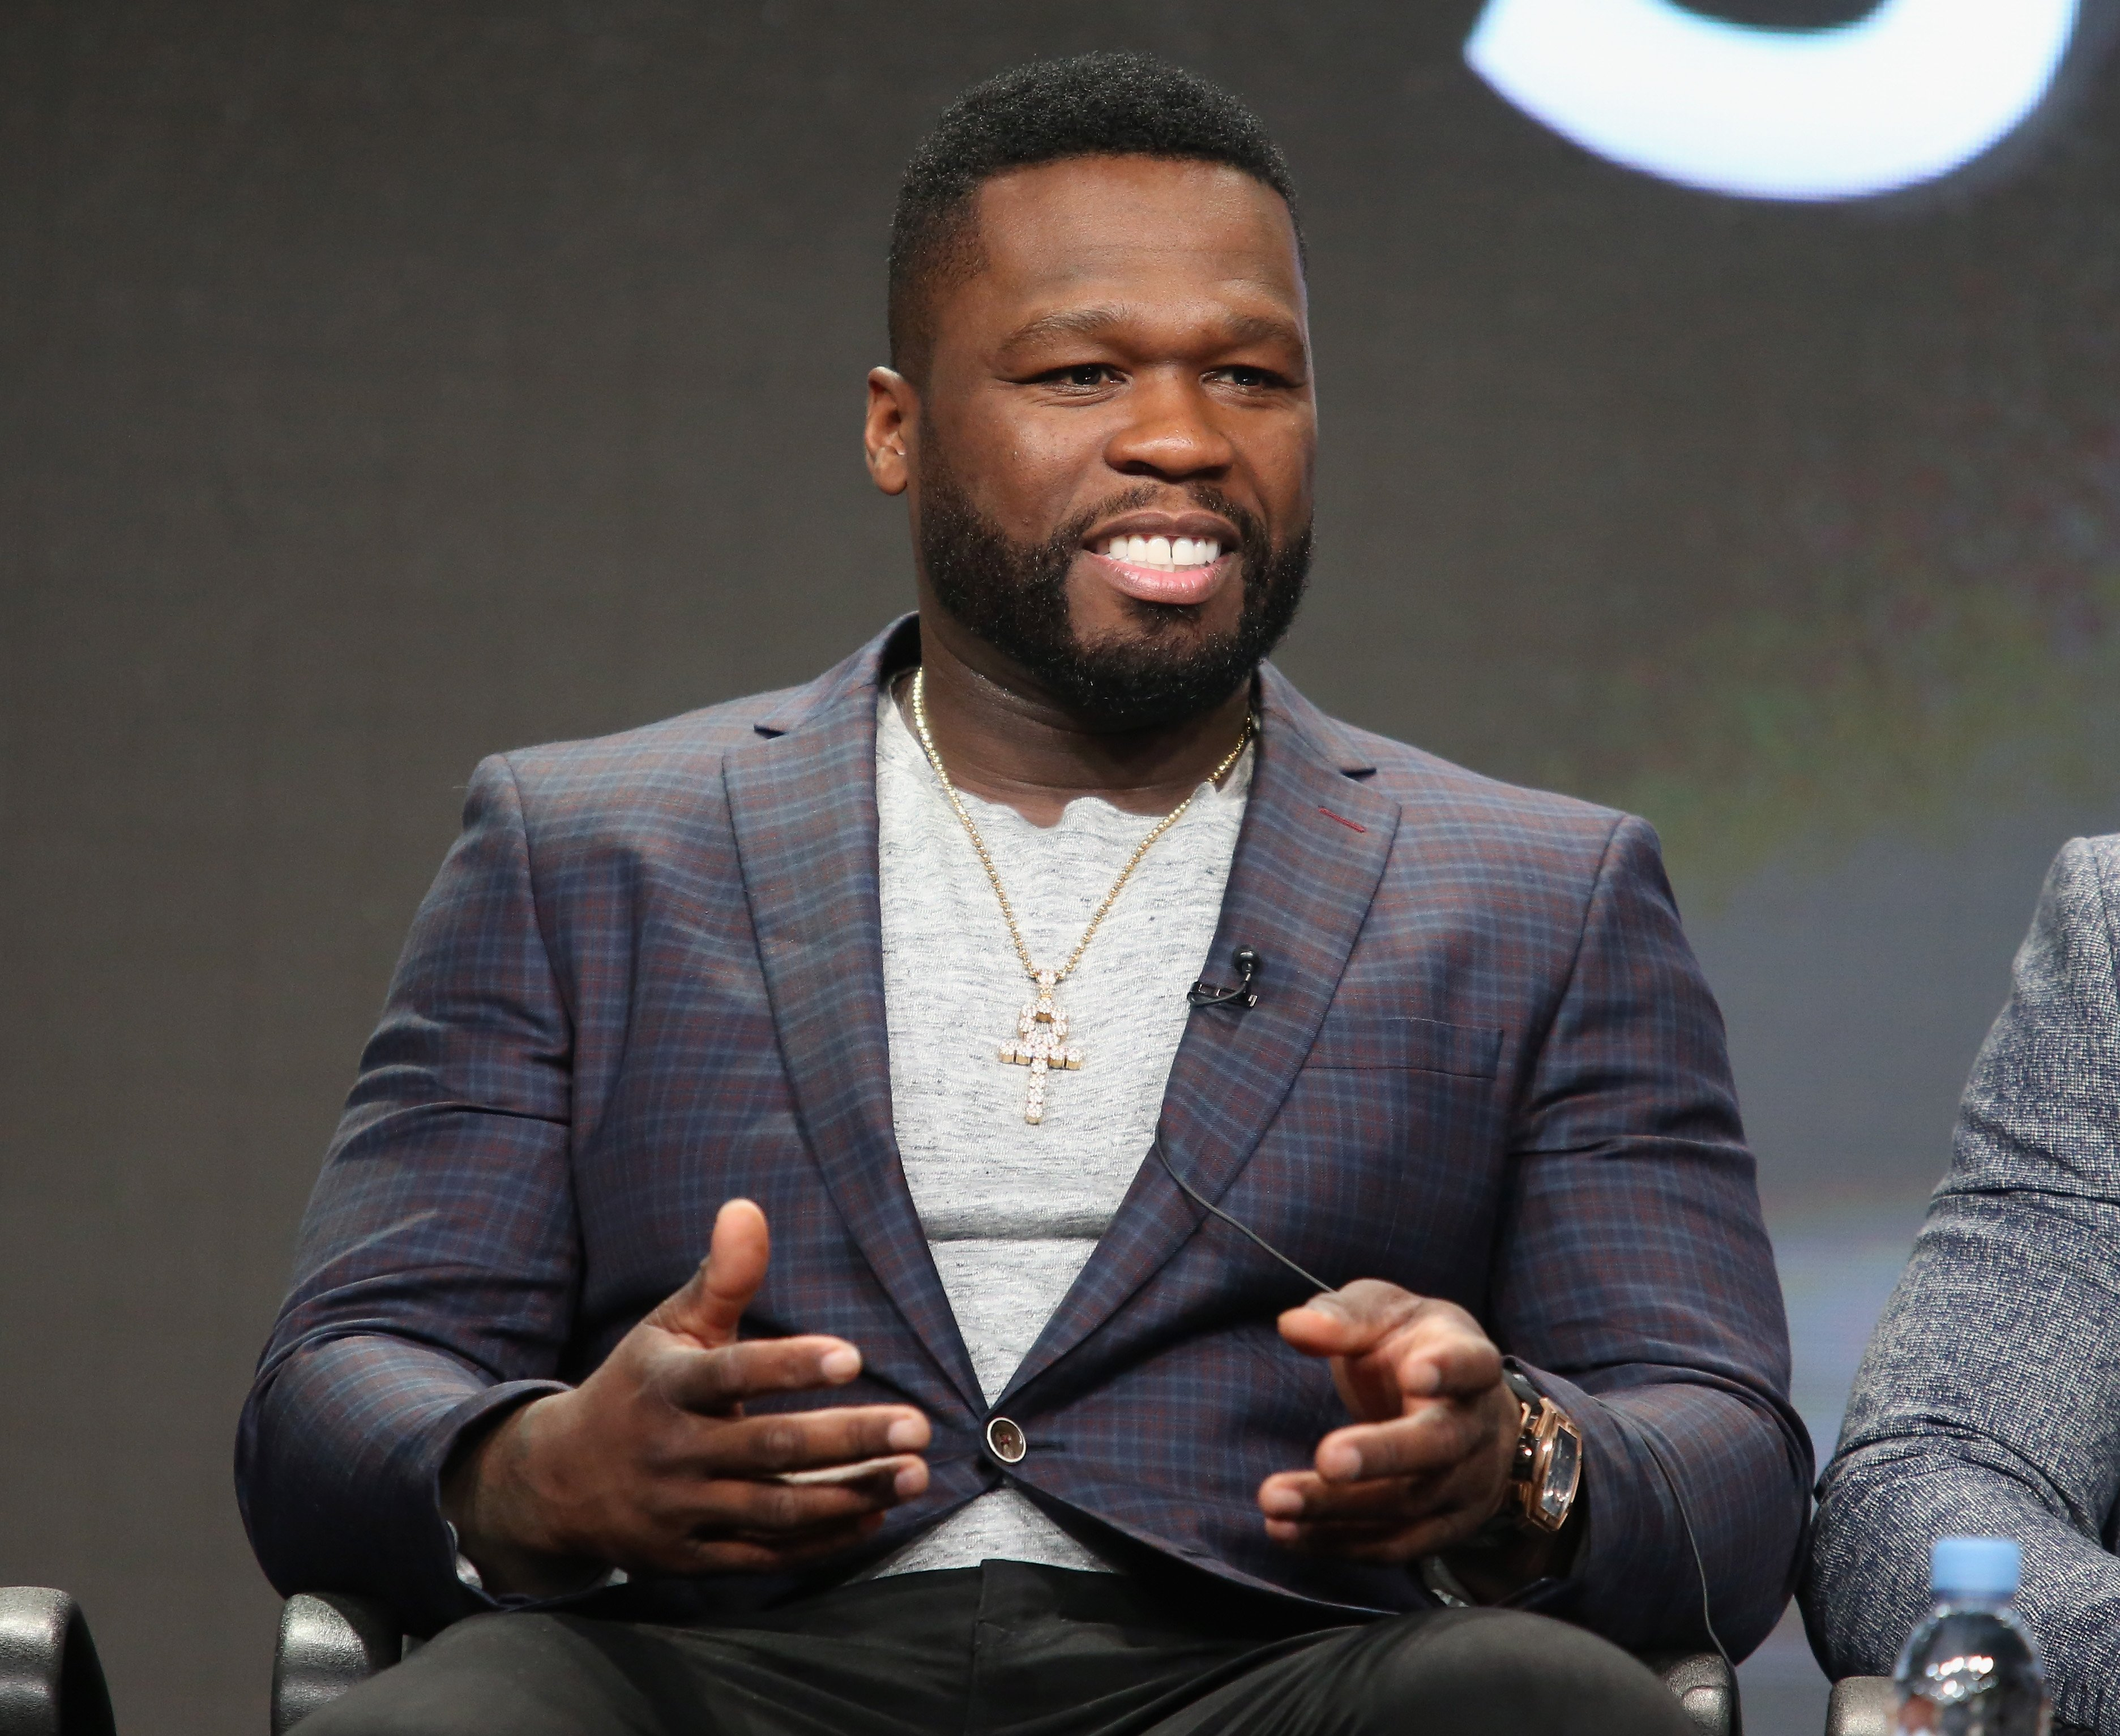 50 Cent at the Television Critics Association Summer Tour on Aug. 1, 2016 in California | Photo: Getty Images